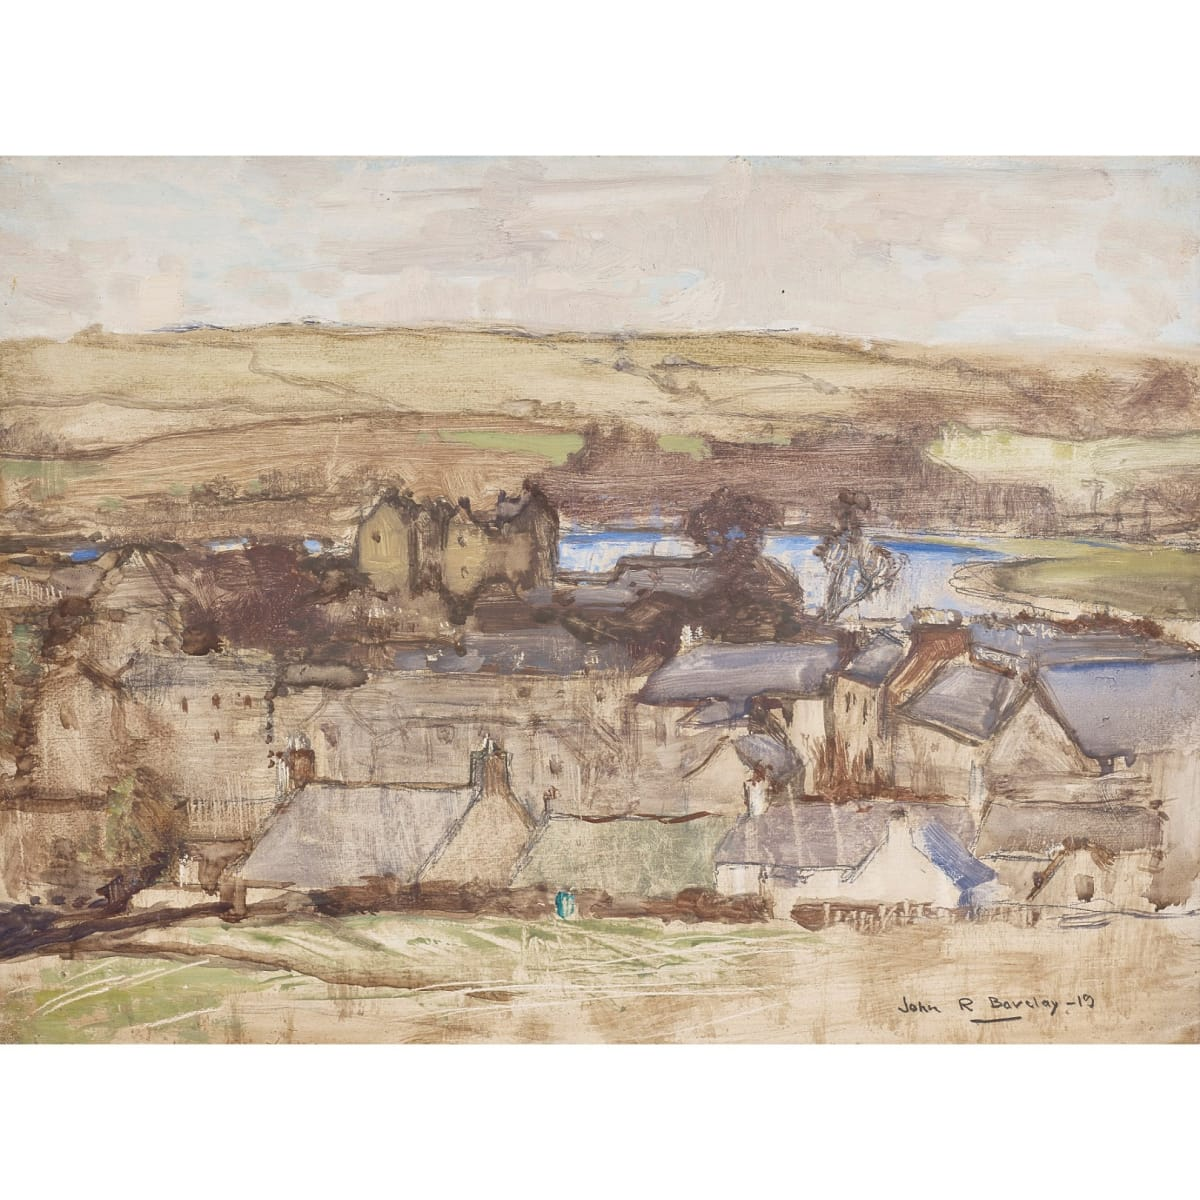 John Rankine Barclay Kirkcudbright signed and dated '19 oil on panel 9 x 12 inches